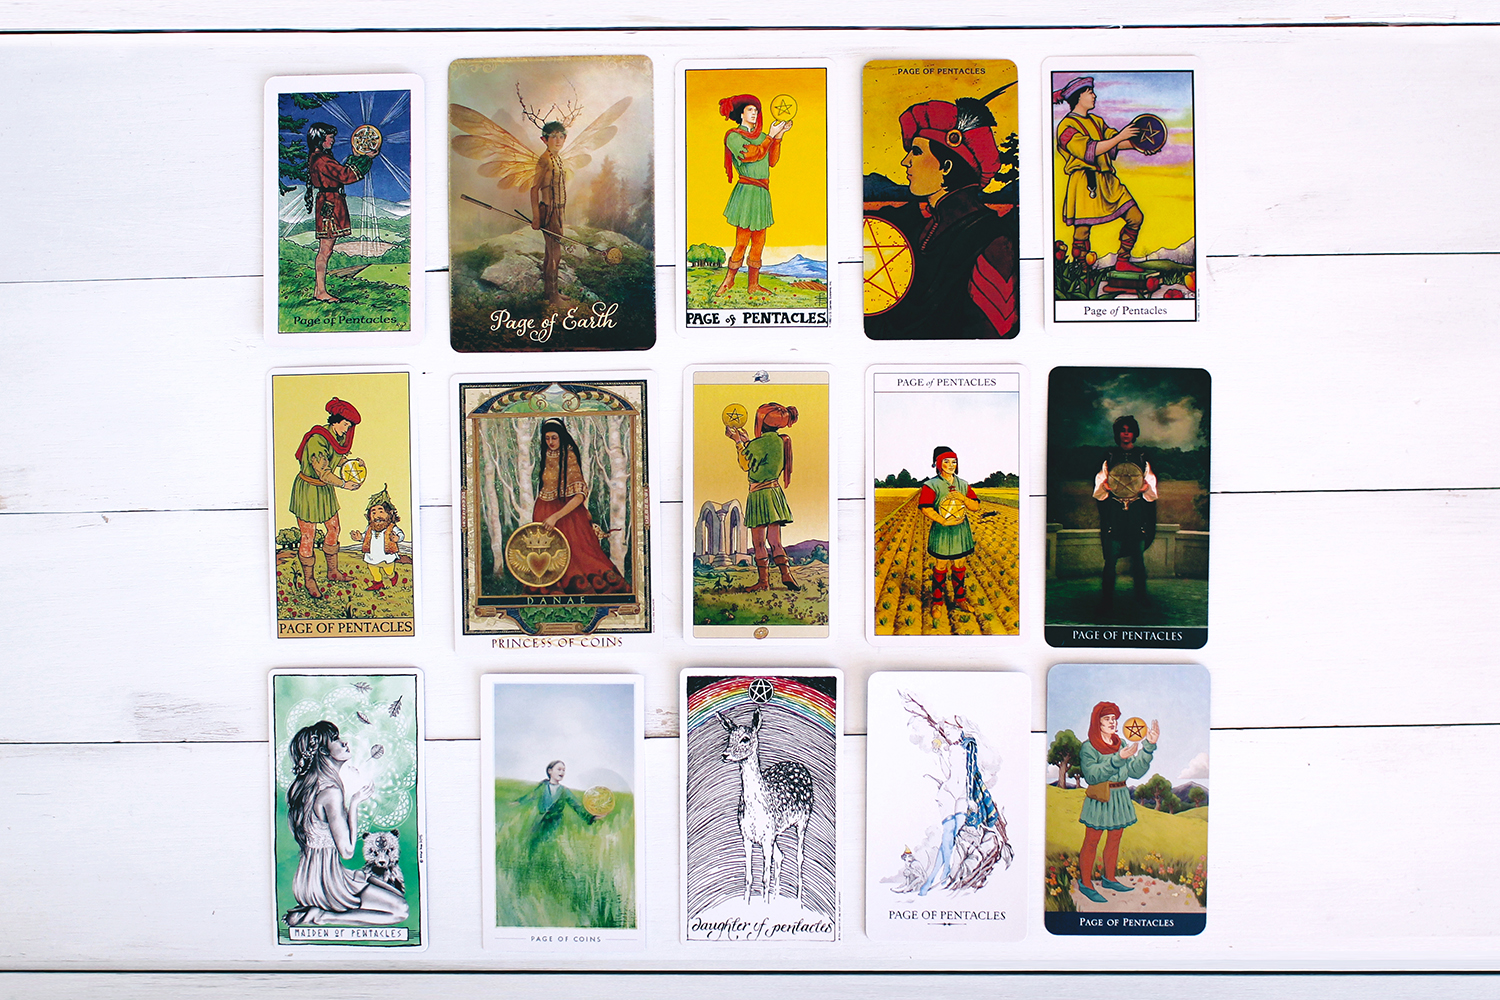 The Pages of the Tarot – Page of Pentacles – ILLUMINATE HOPE